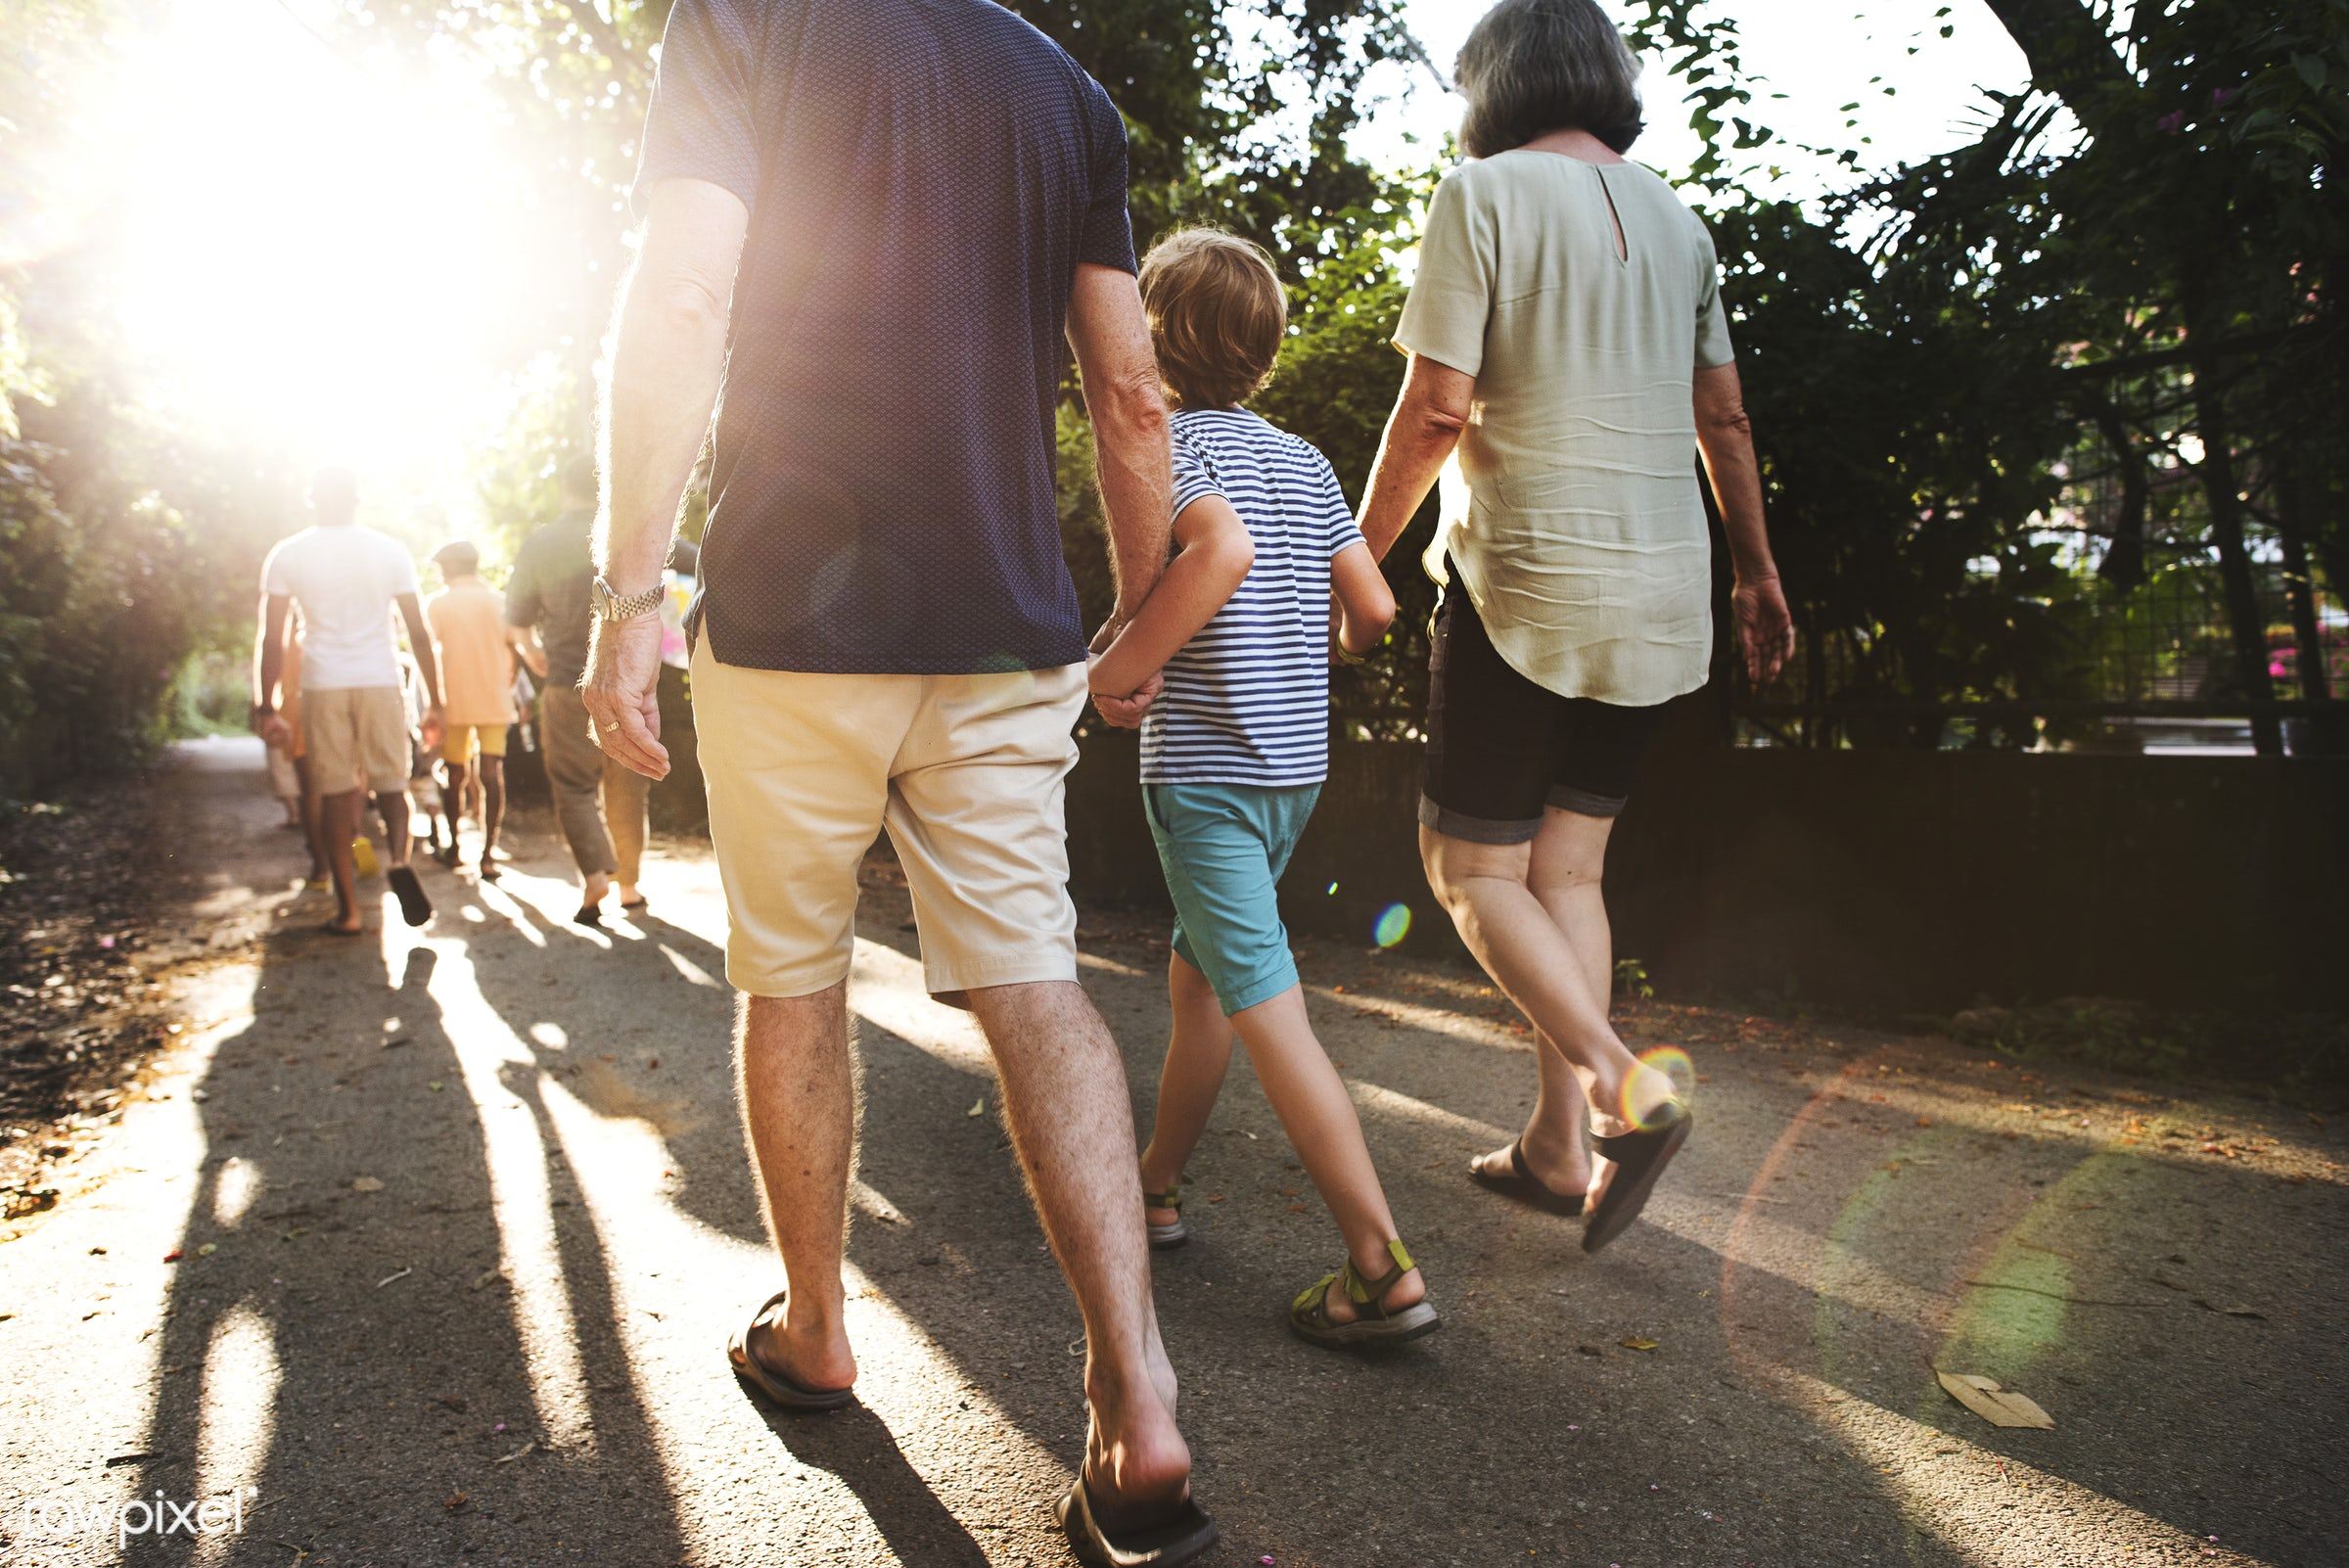 Rear view of caucasian family walking outdoors together - cheerful, closeup, enjoying, family, fun, happiness, holiday, legs...